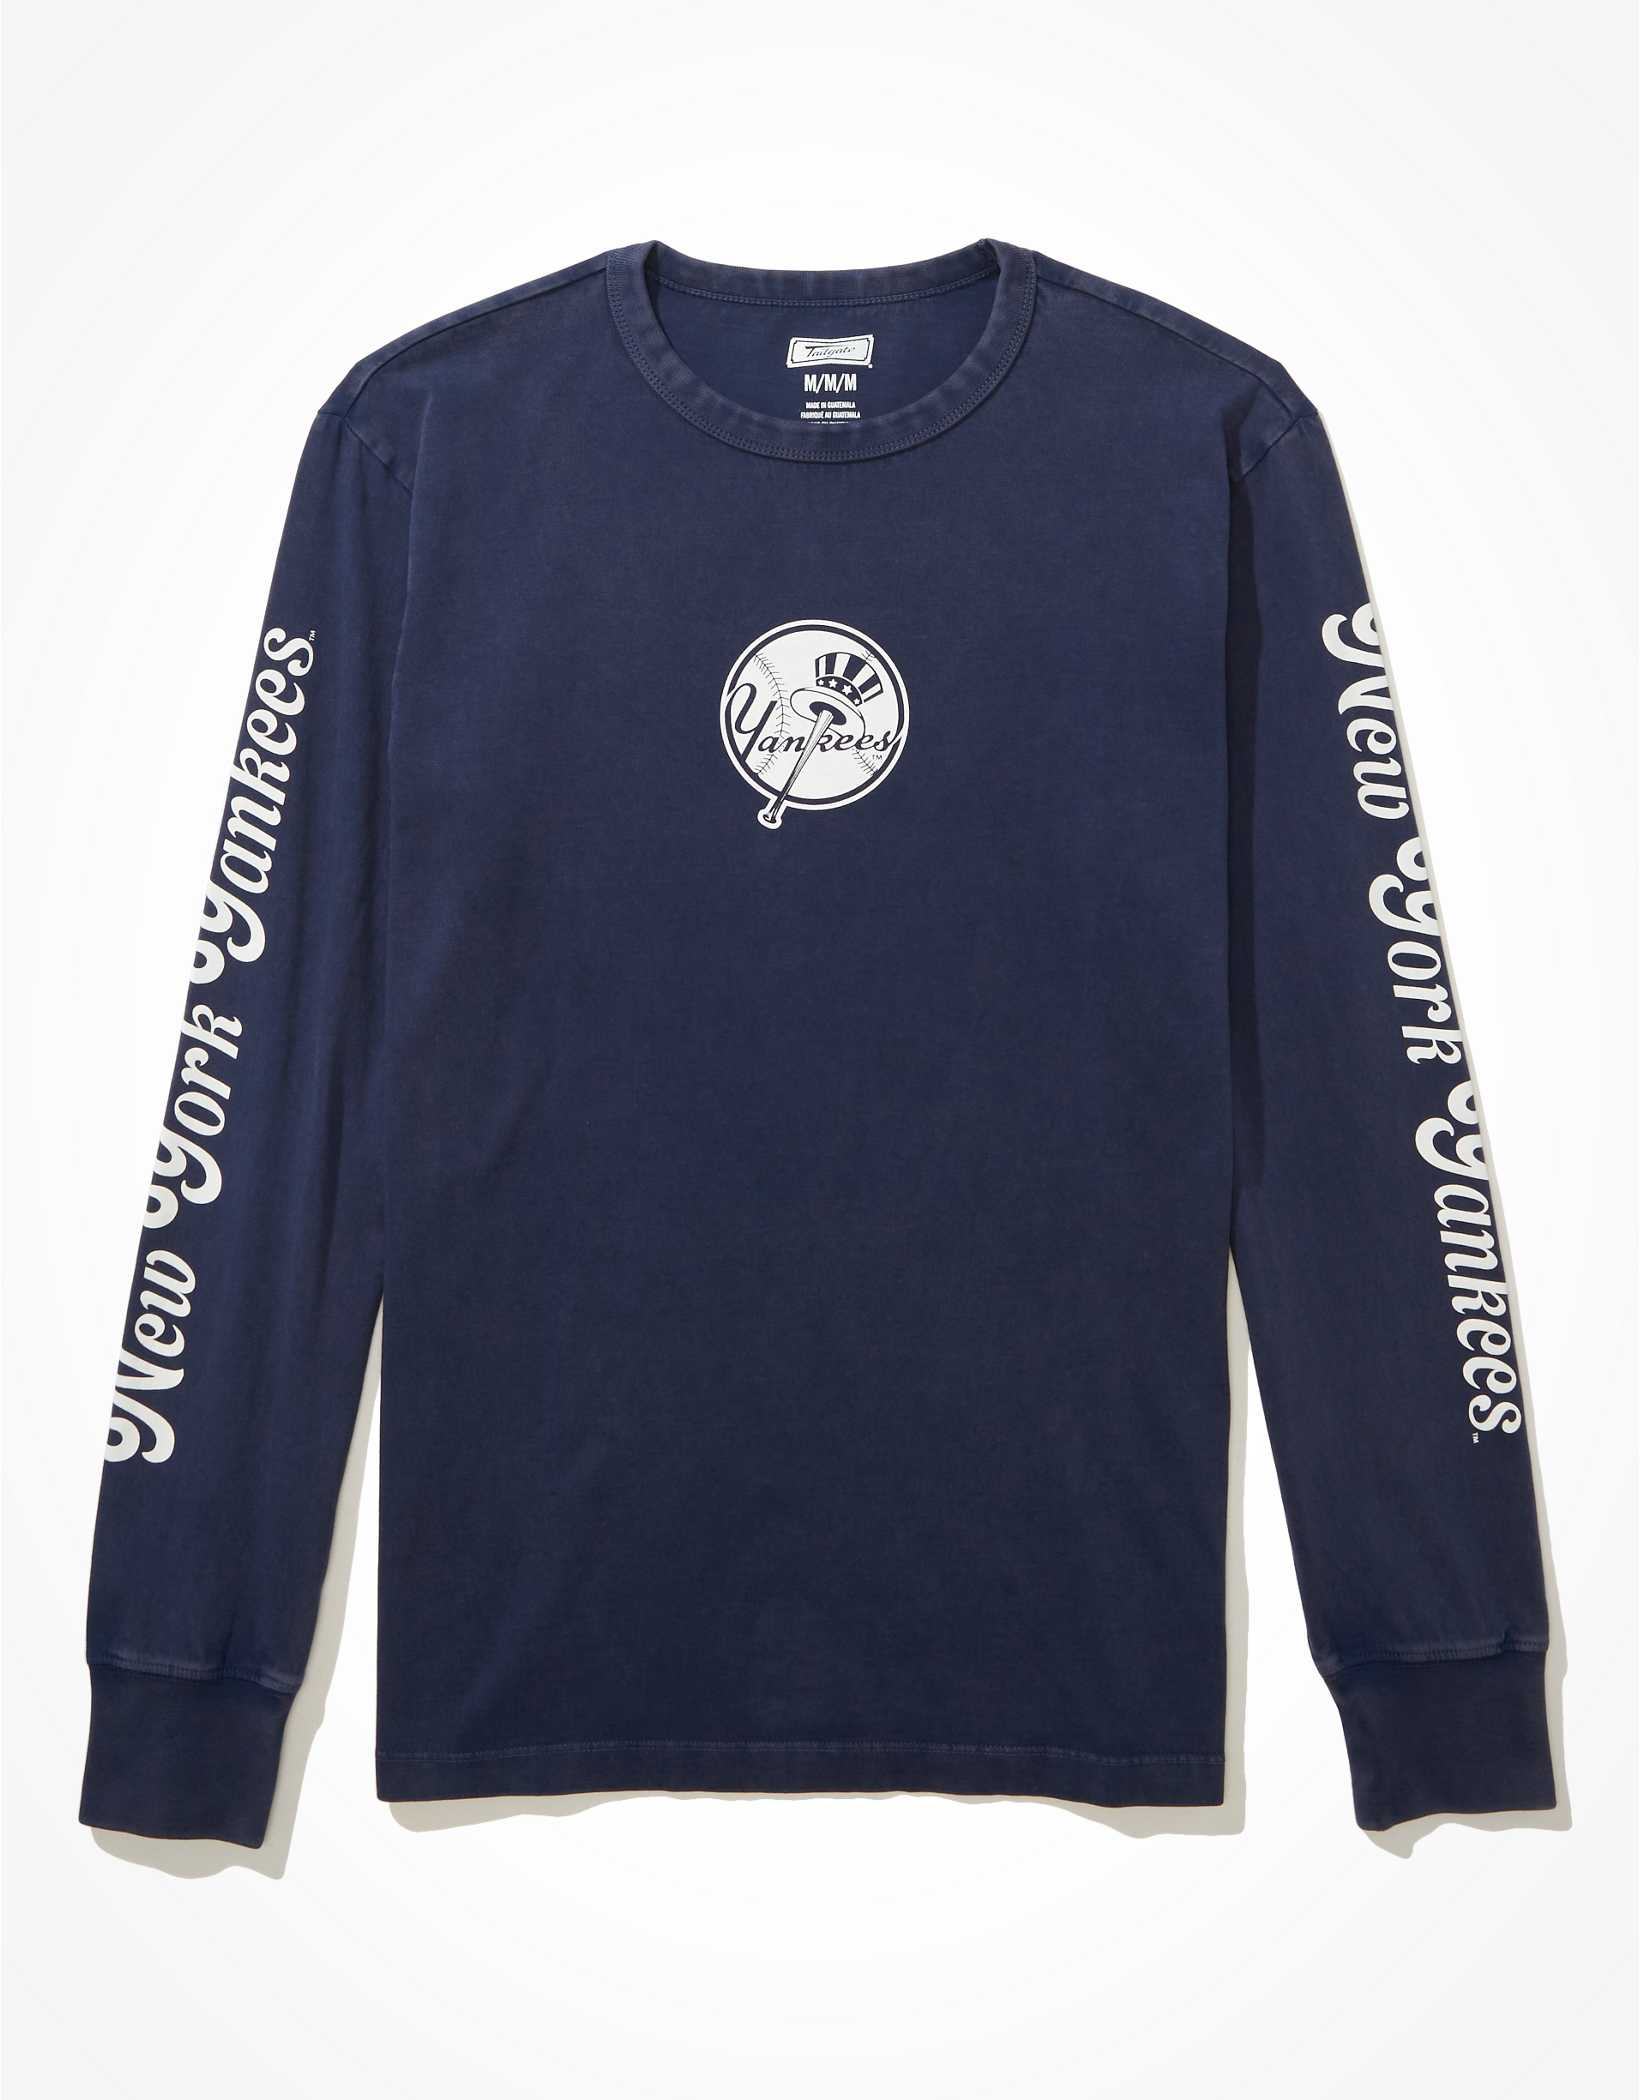 Tailgate Men's NY Yankees Long-Sleeve Graphic T-Shirt